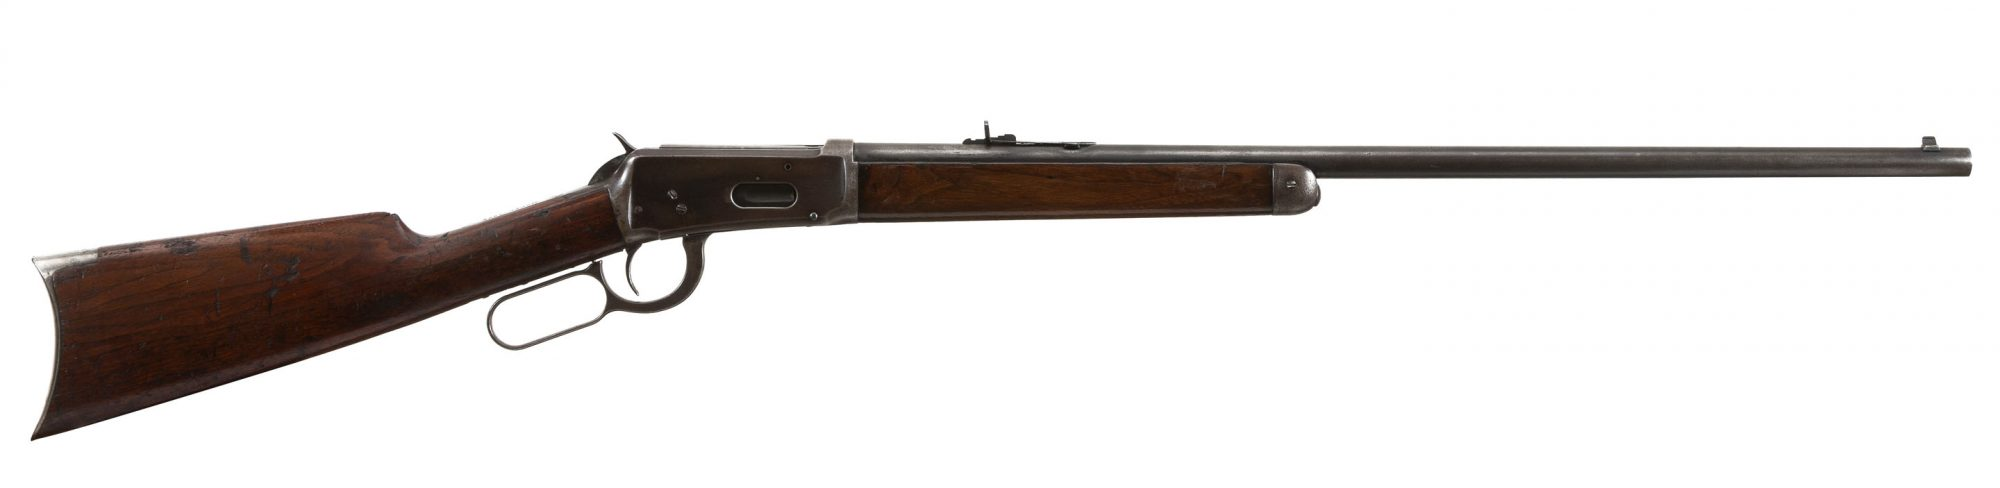 Photo of a Winchester 1894 from 1908, for sale by Turnbull Restoration of Bloomfield, NY